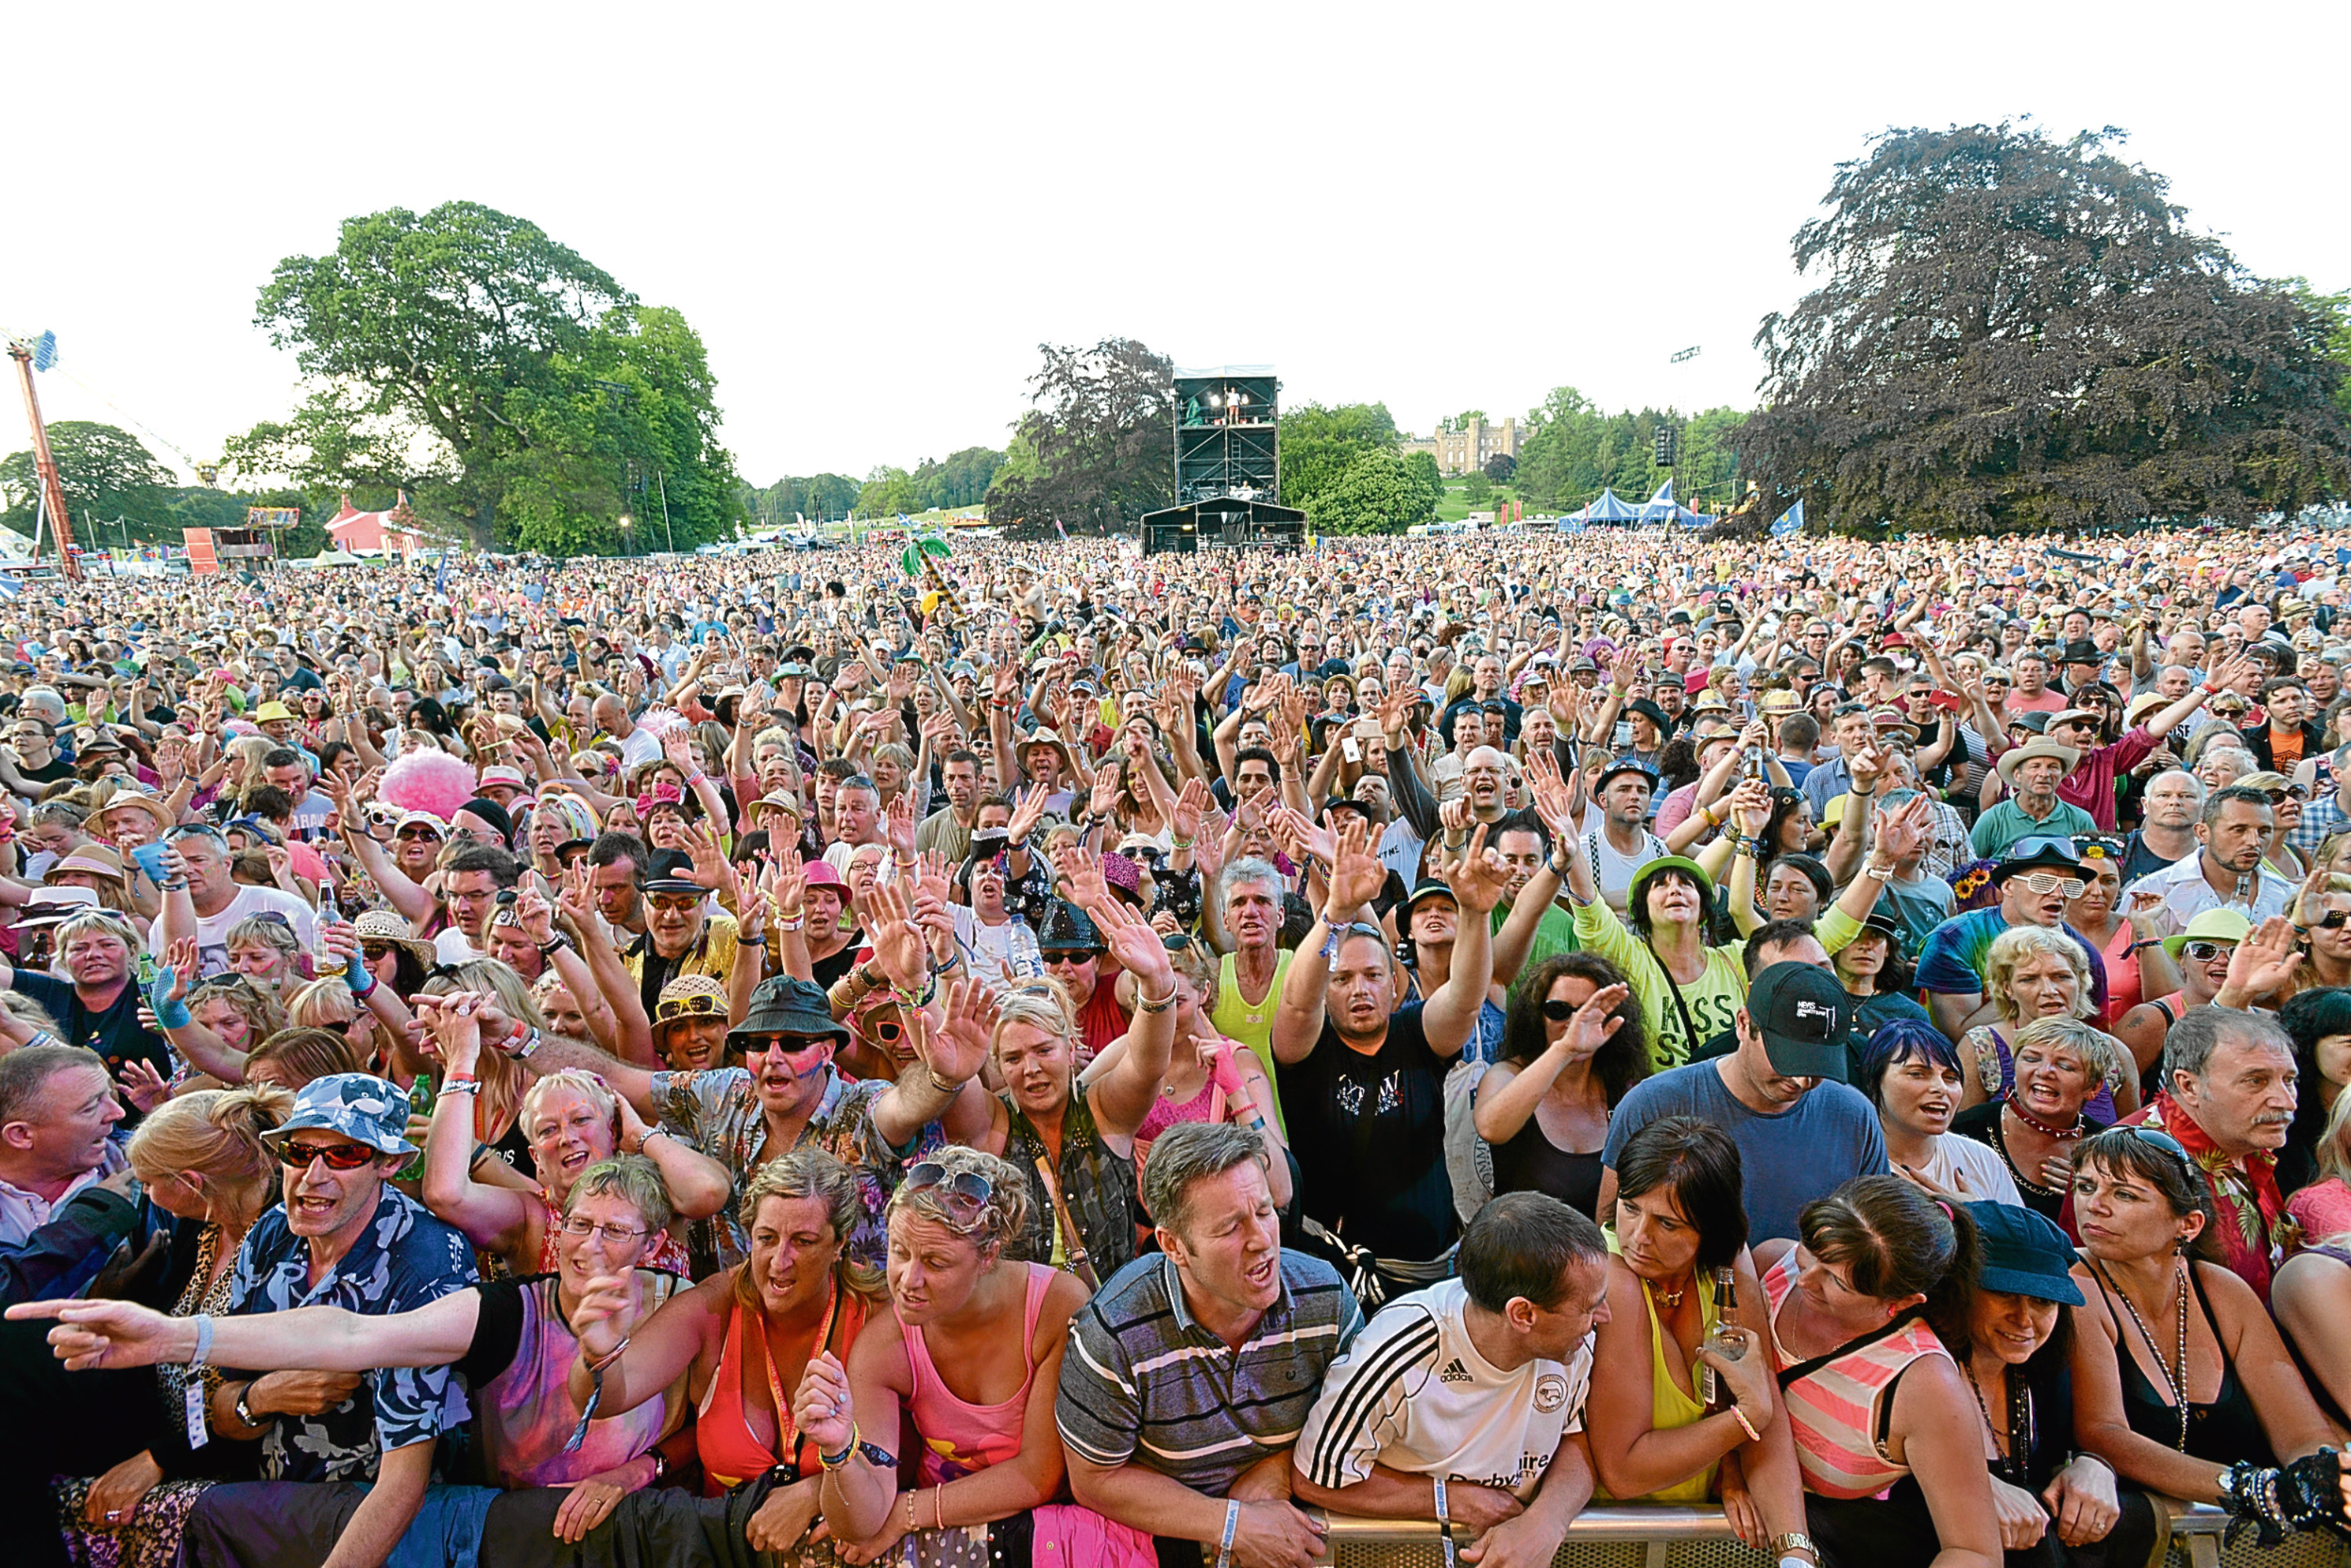 Revellers at a previous Rewind Festival in the grounds of Scone Palace.